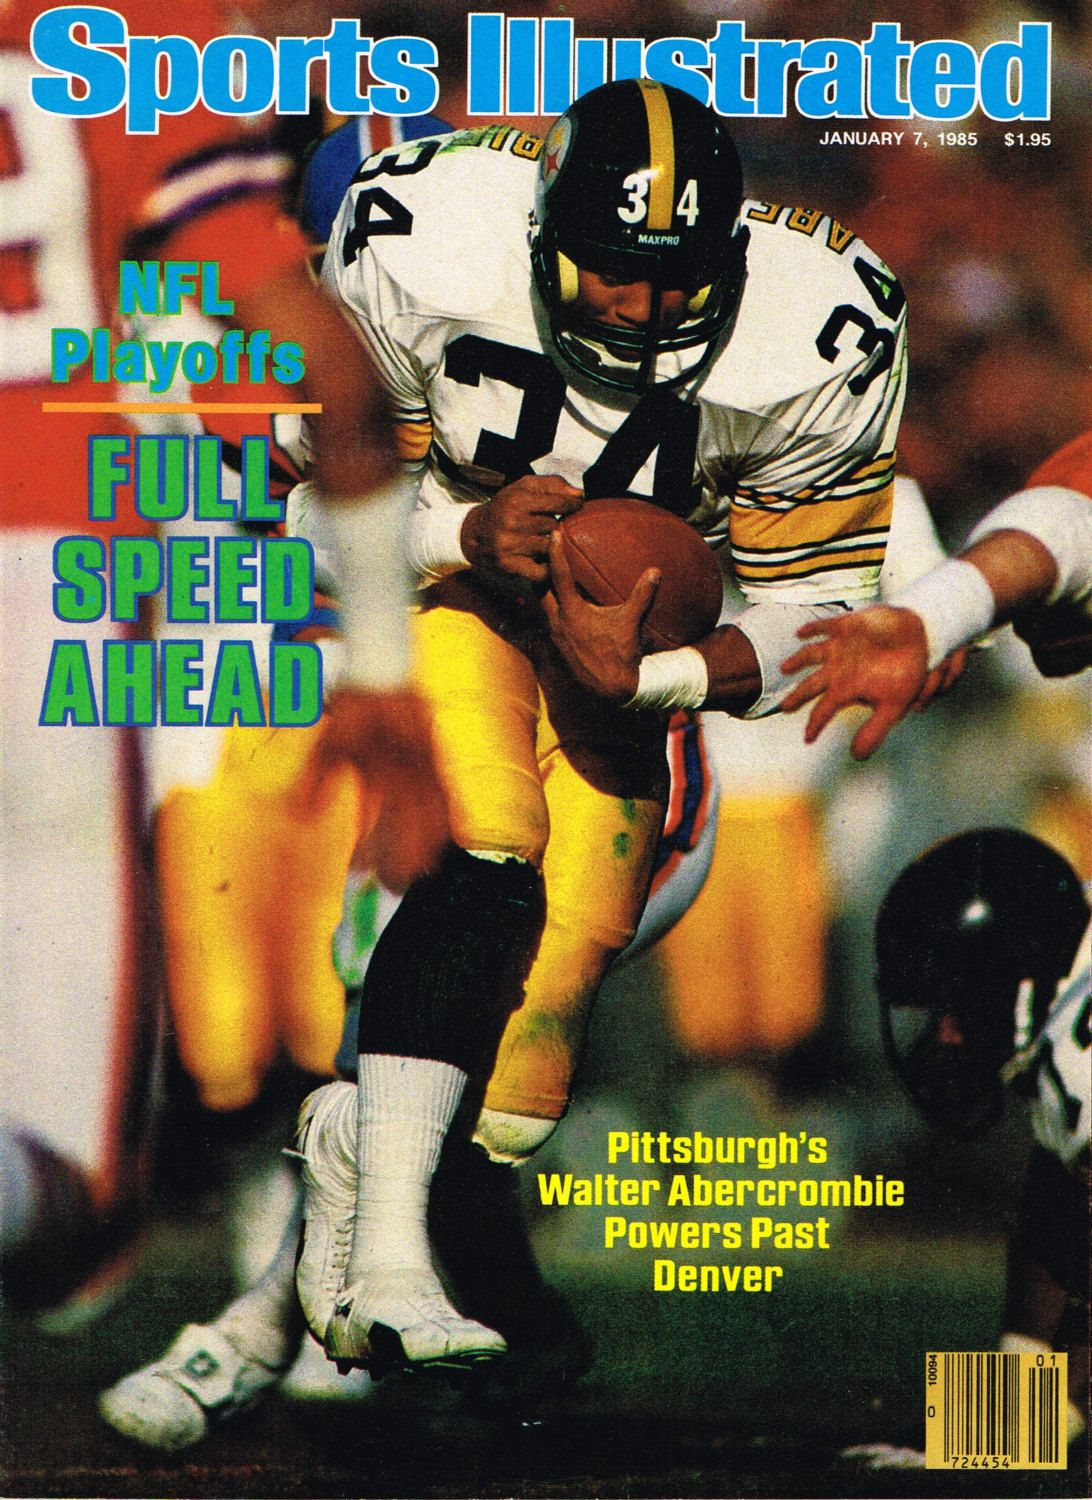 1985 sports illustrated cover nfl pitsburgh steelers